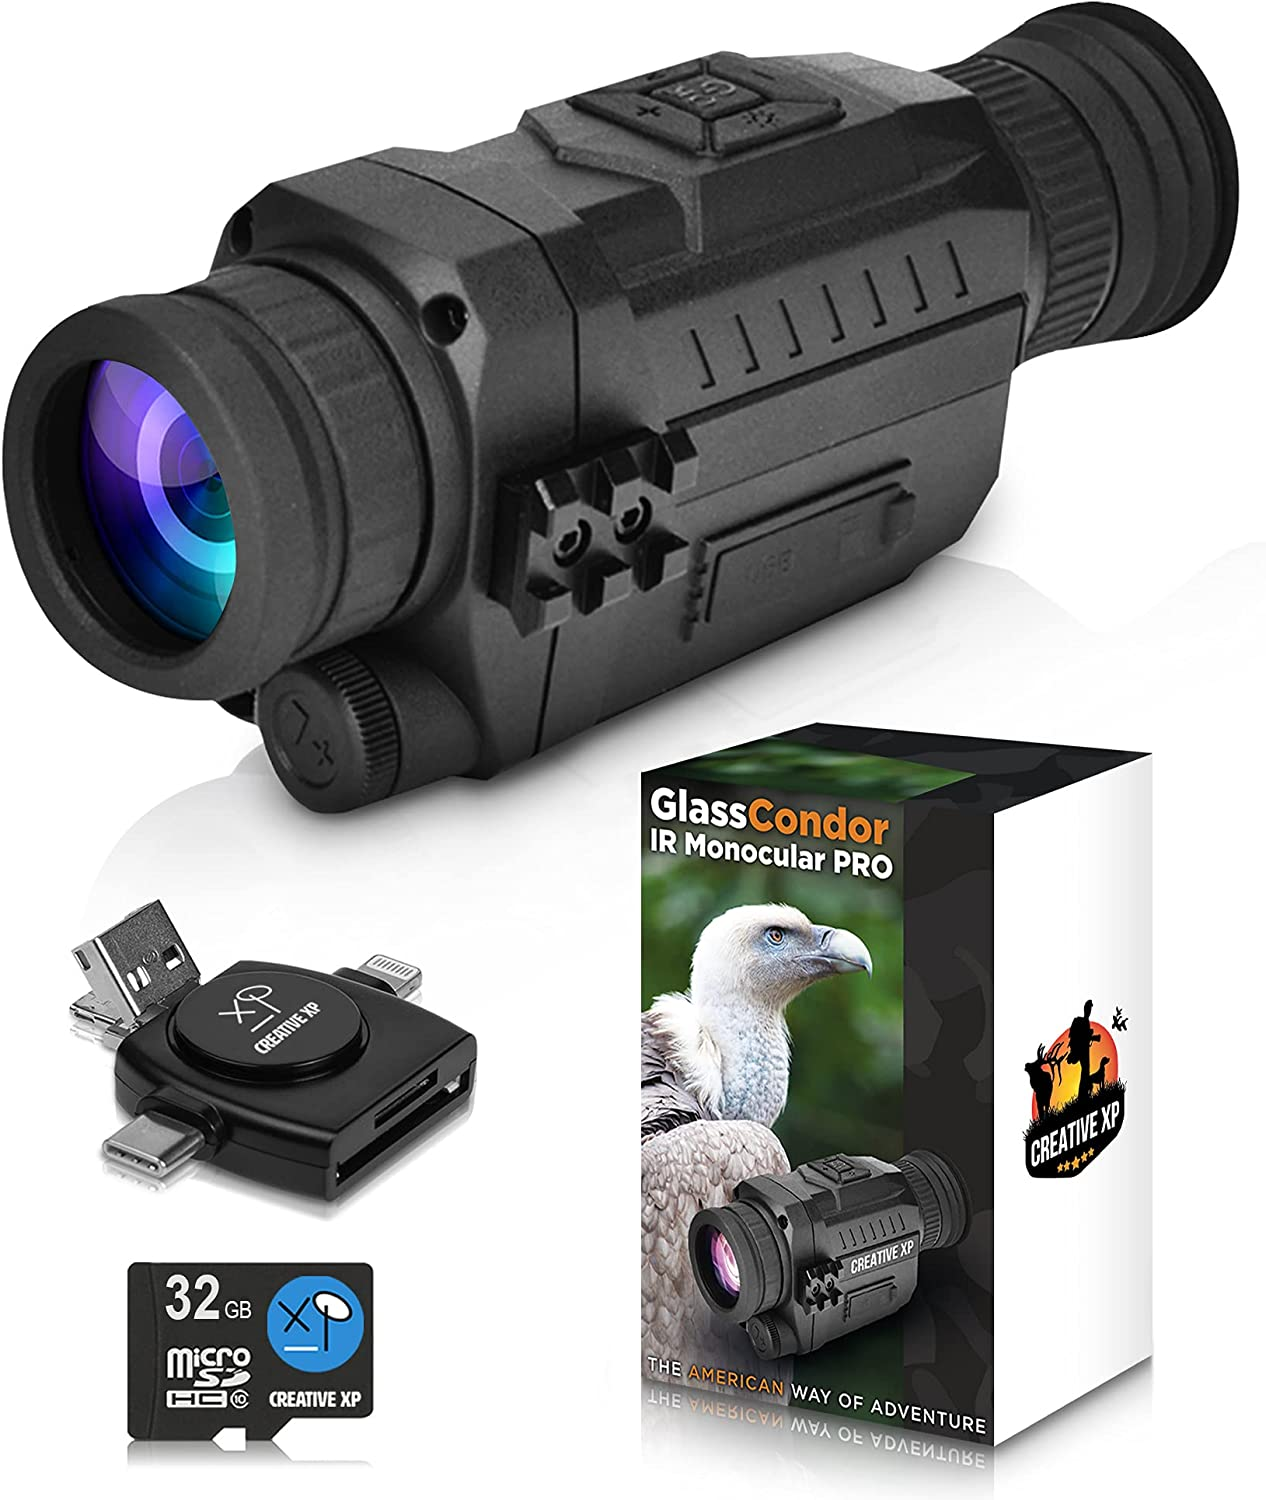 CREATIVE XP 2021 Digital Night Vision Limited Special Price PRO for Oklahoma City Mall Dar Monocular 100%